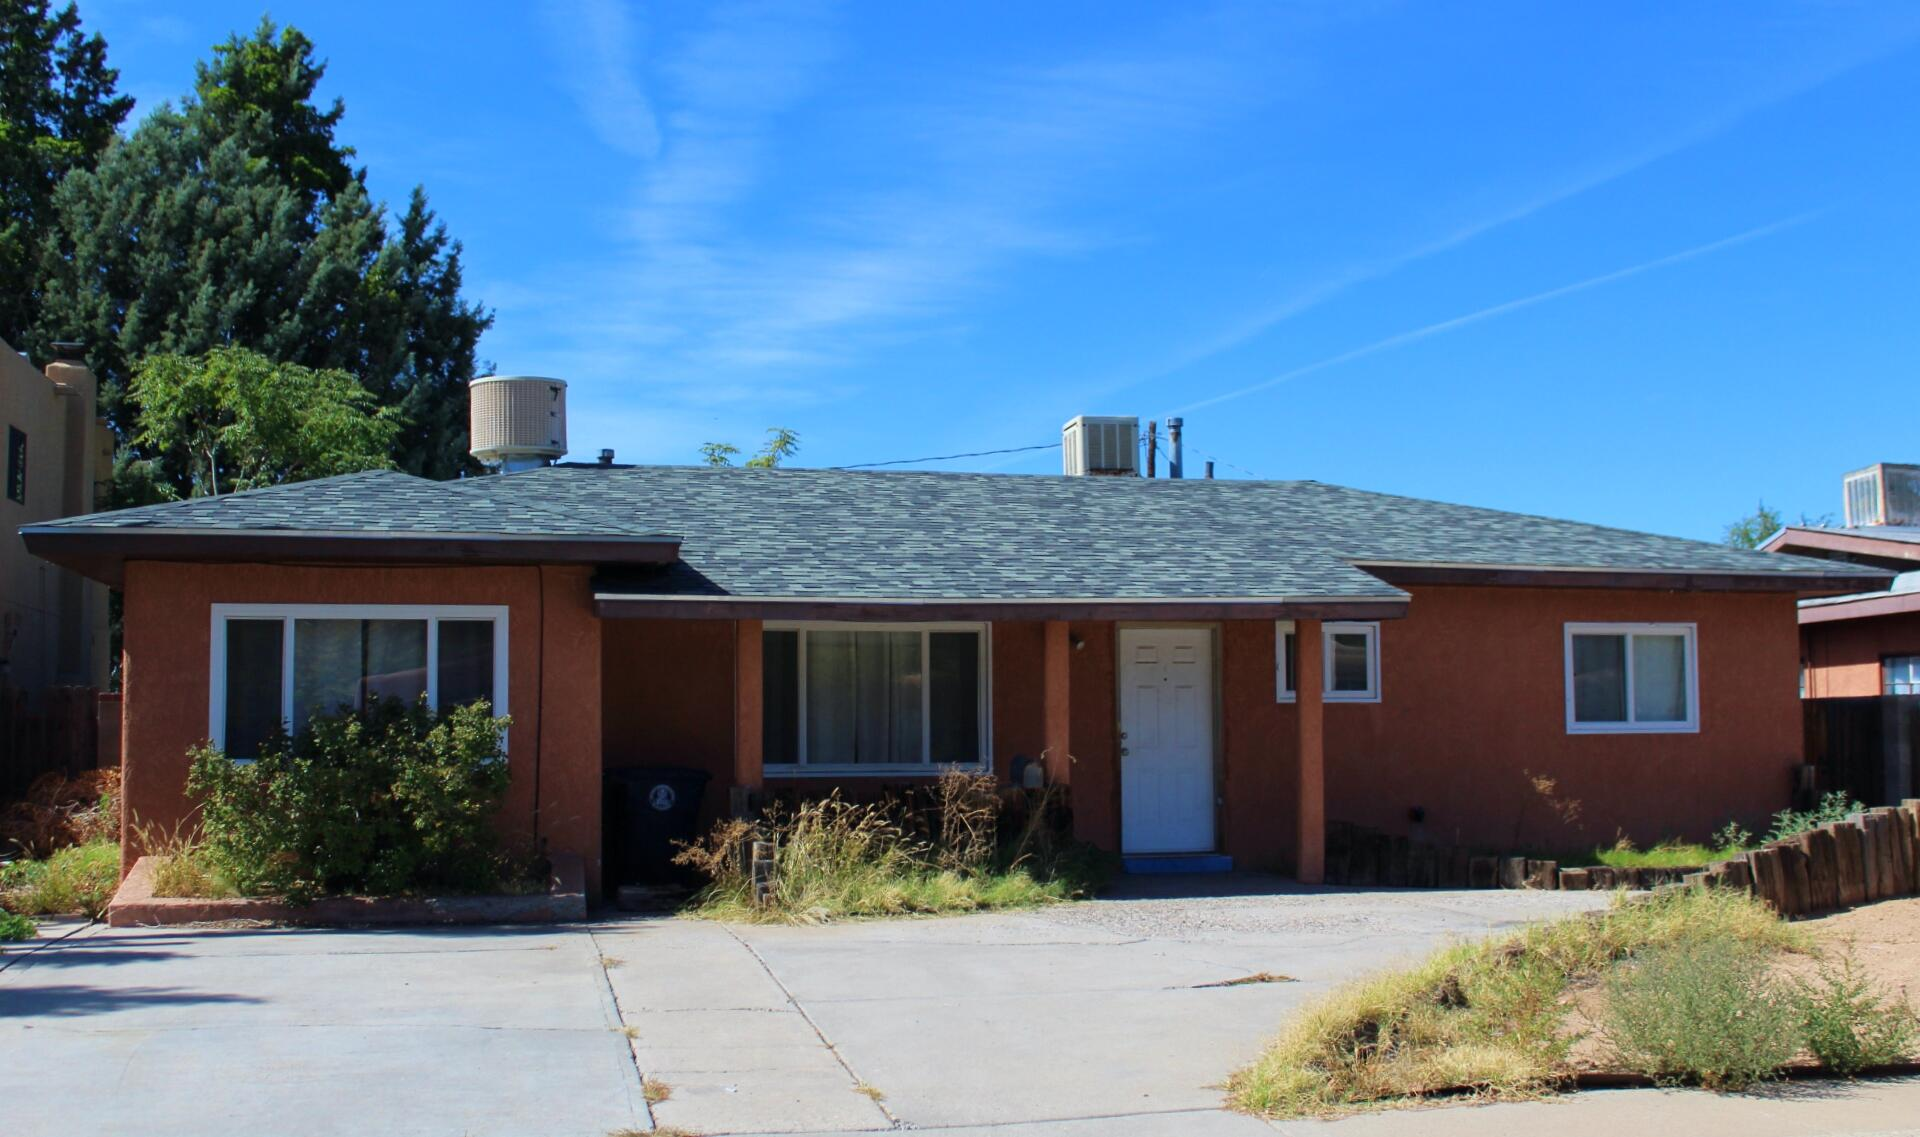 Investor Special. Tons of potential. 3 bed 2 full bath home with attached Casita and storage. Casita square footage not included. Add your special touch and make this a beautiful home.